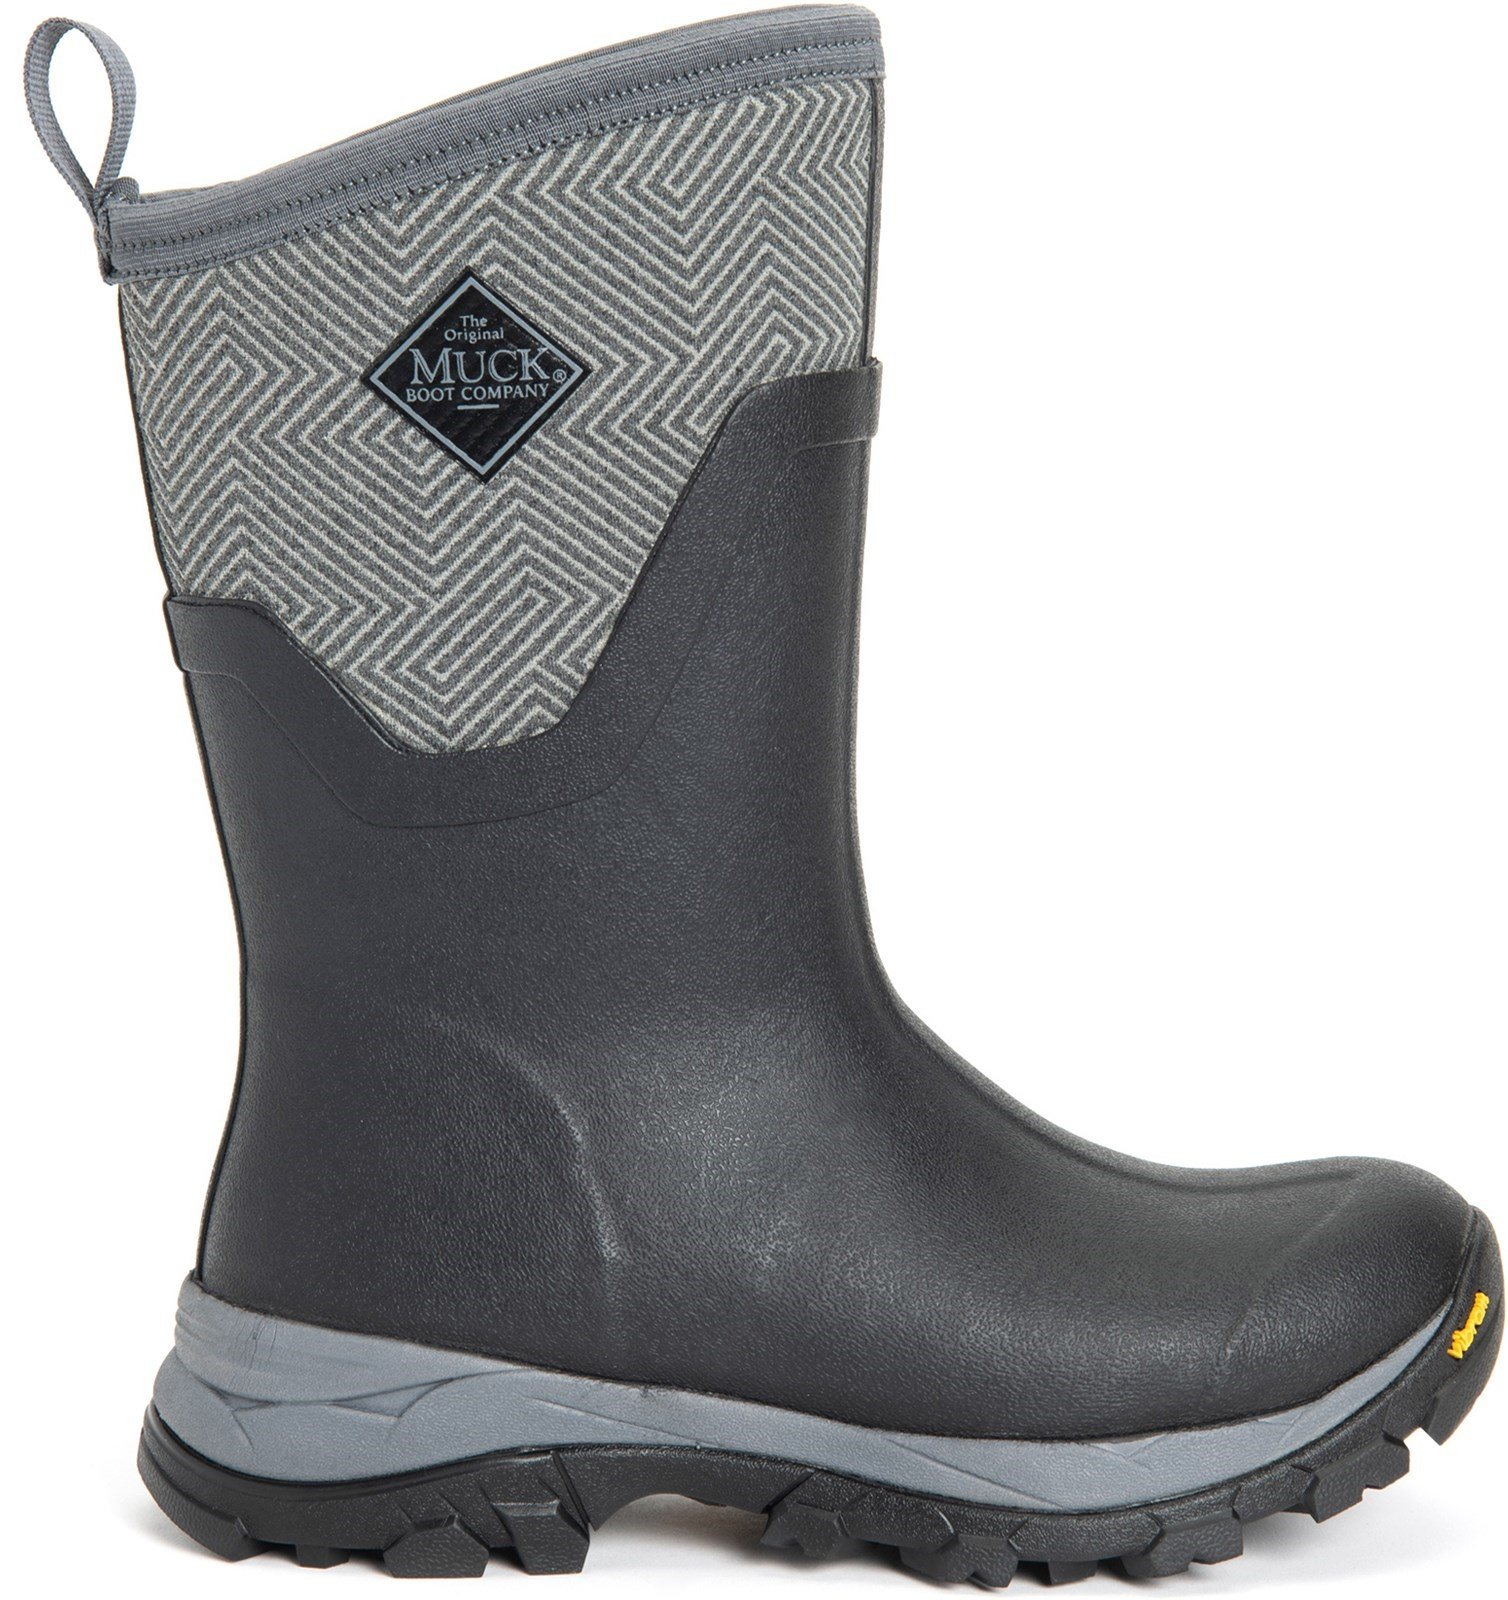 Muck Boots Unisex Arctic Ice Mid Boot Various Colours 27615 - Grey Geometric Print 3